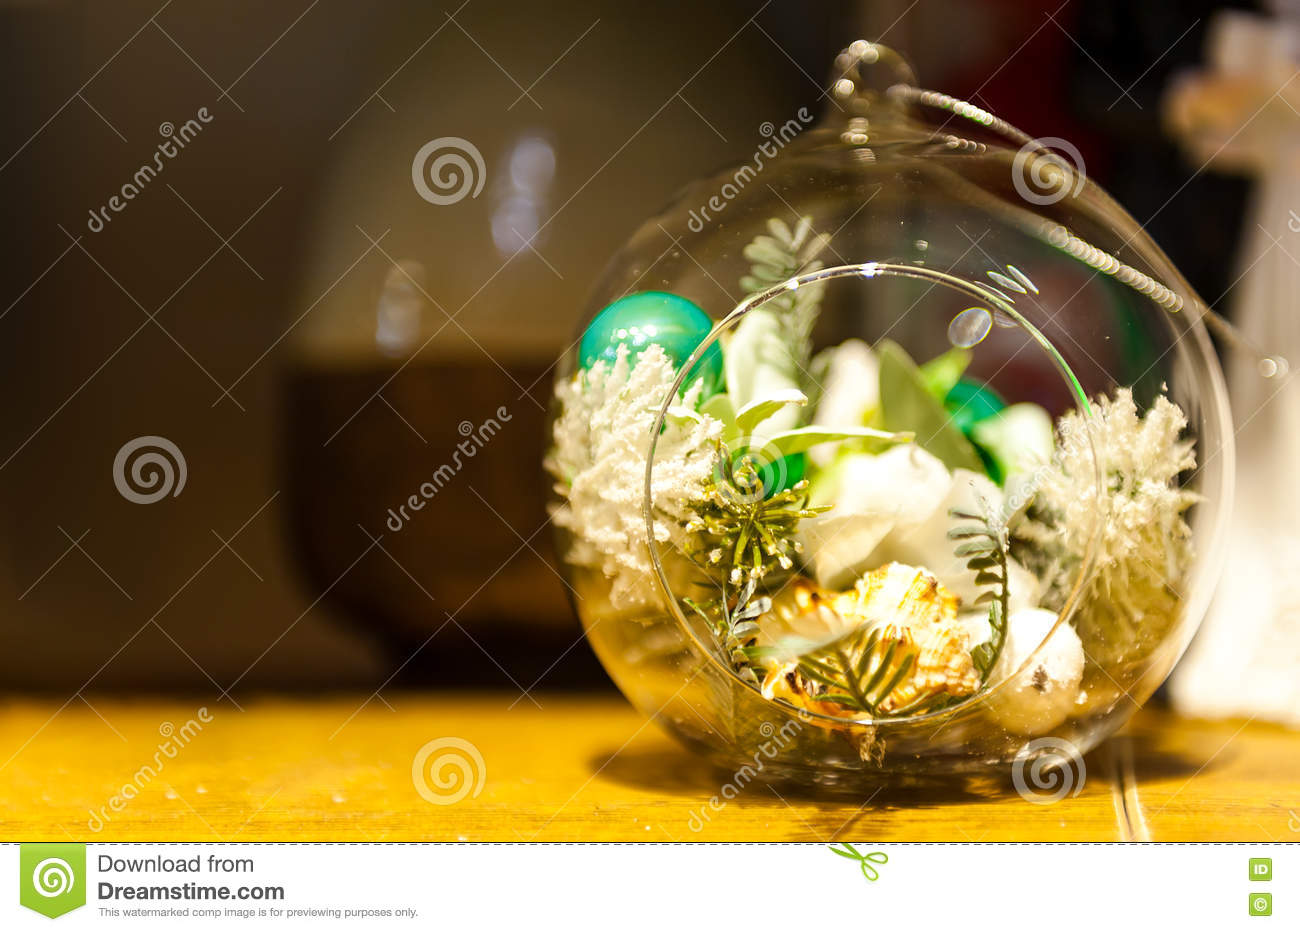 Terrarium With Succulent Plants On Wooden Table Stock Image Image Of Decoration Green 81677767